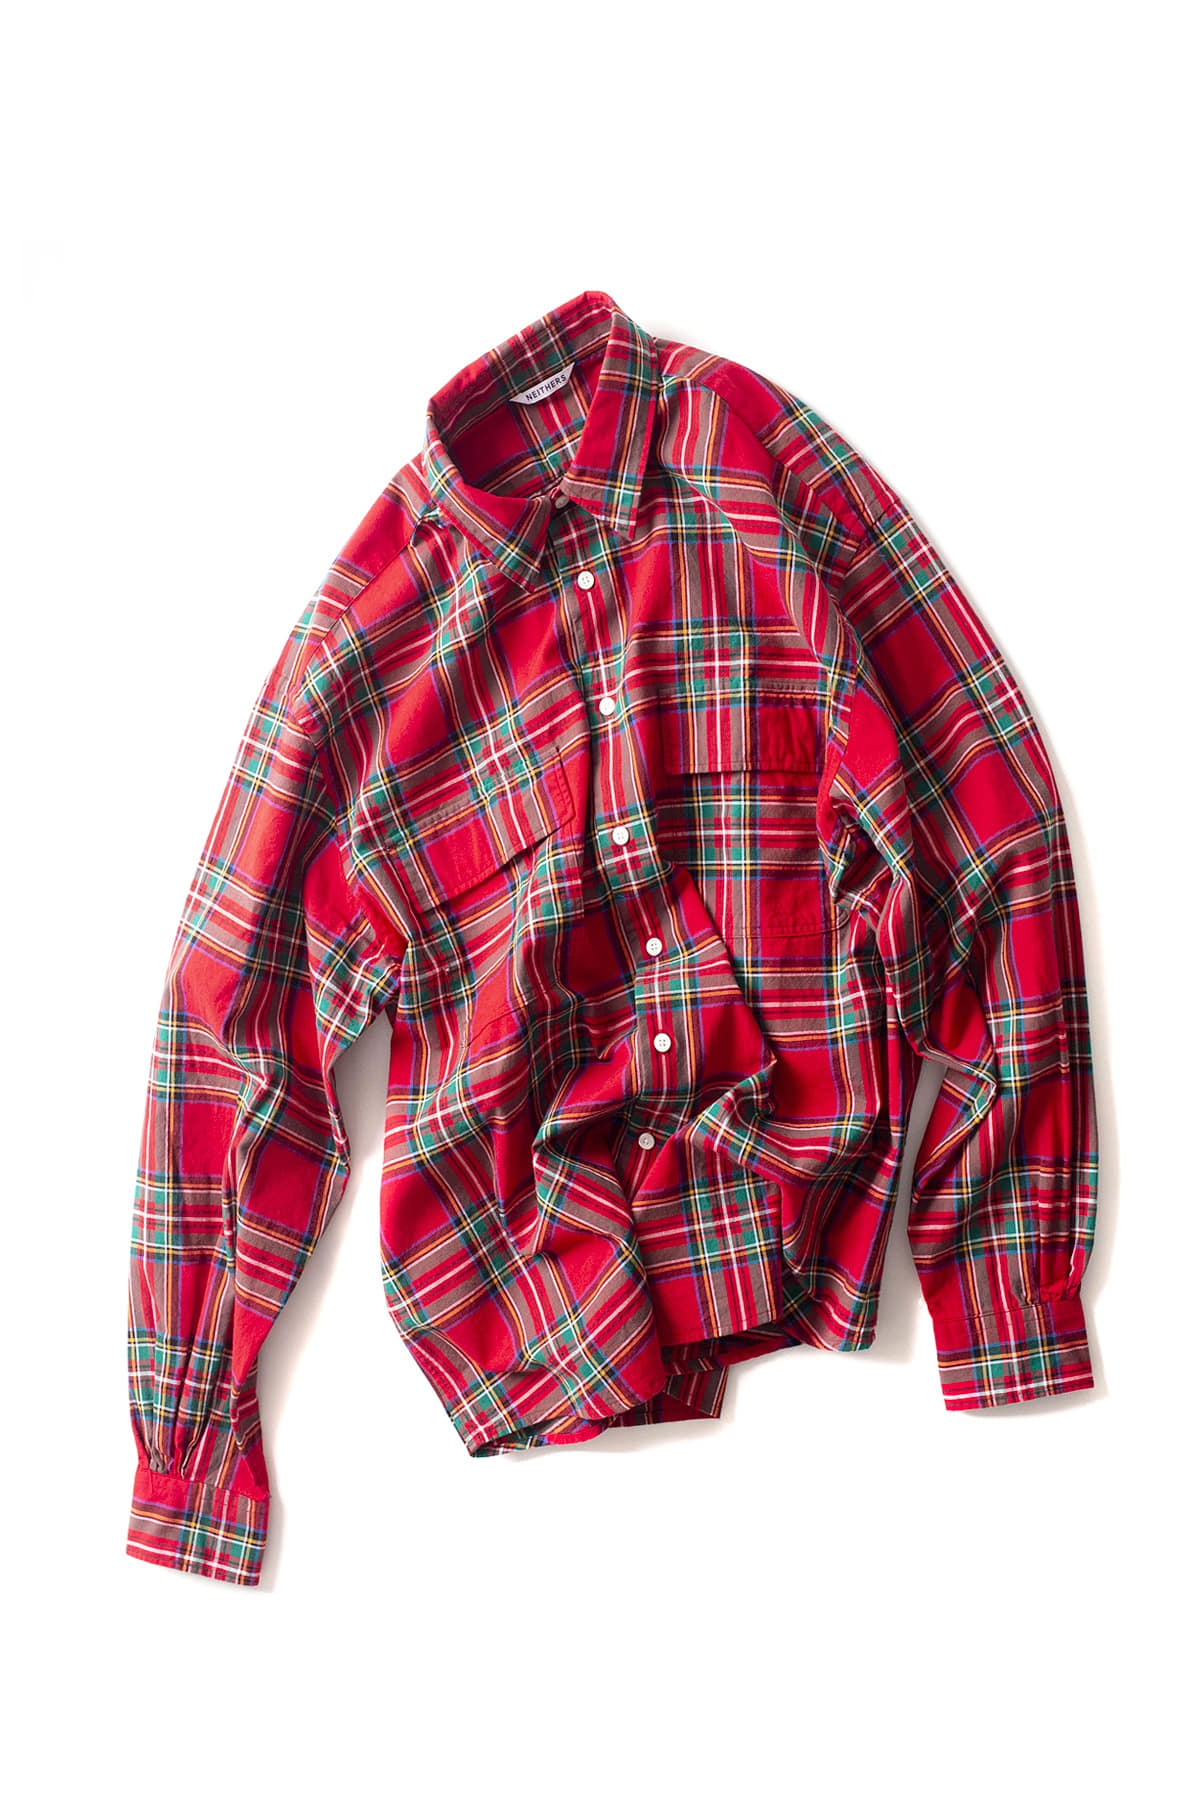 NEITHERS : 2 Pocket Wide Shirt (Red / Green)